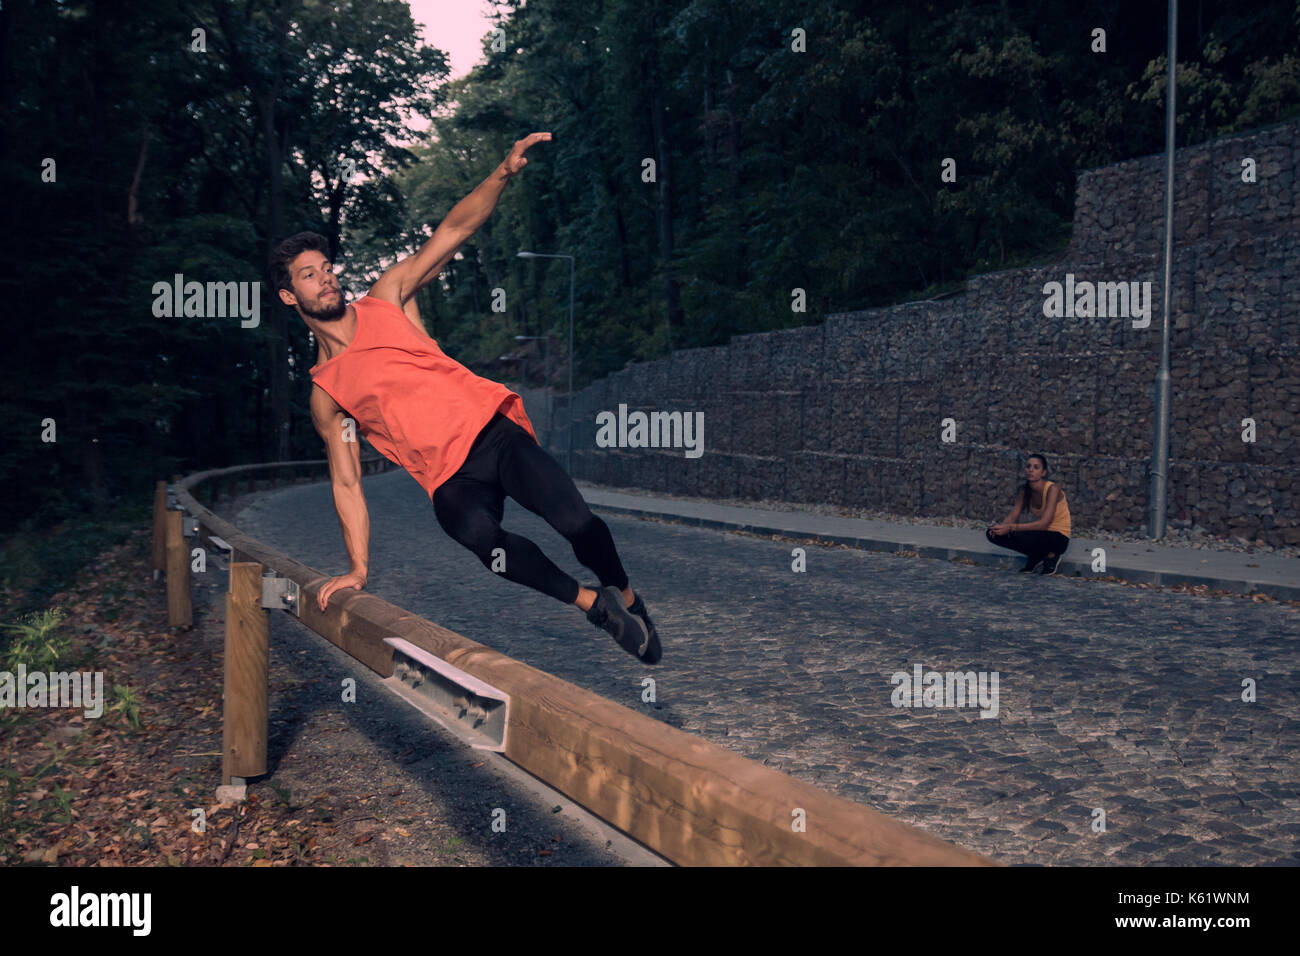 two young people, adventure, road forest outdoors, man jumping fence parkour, street stunt, rural area, woman background behind, jump in air - Stock Image